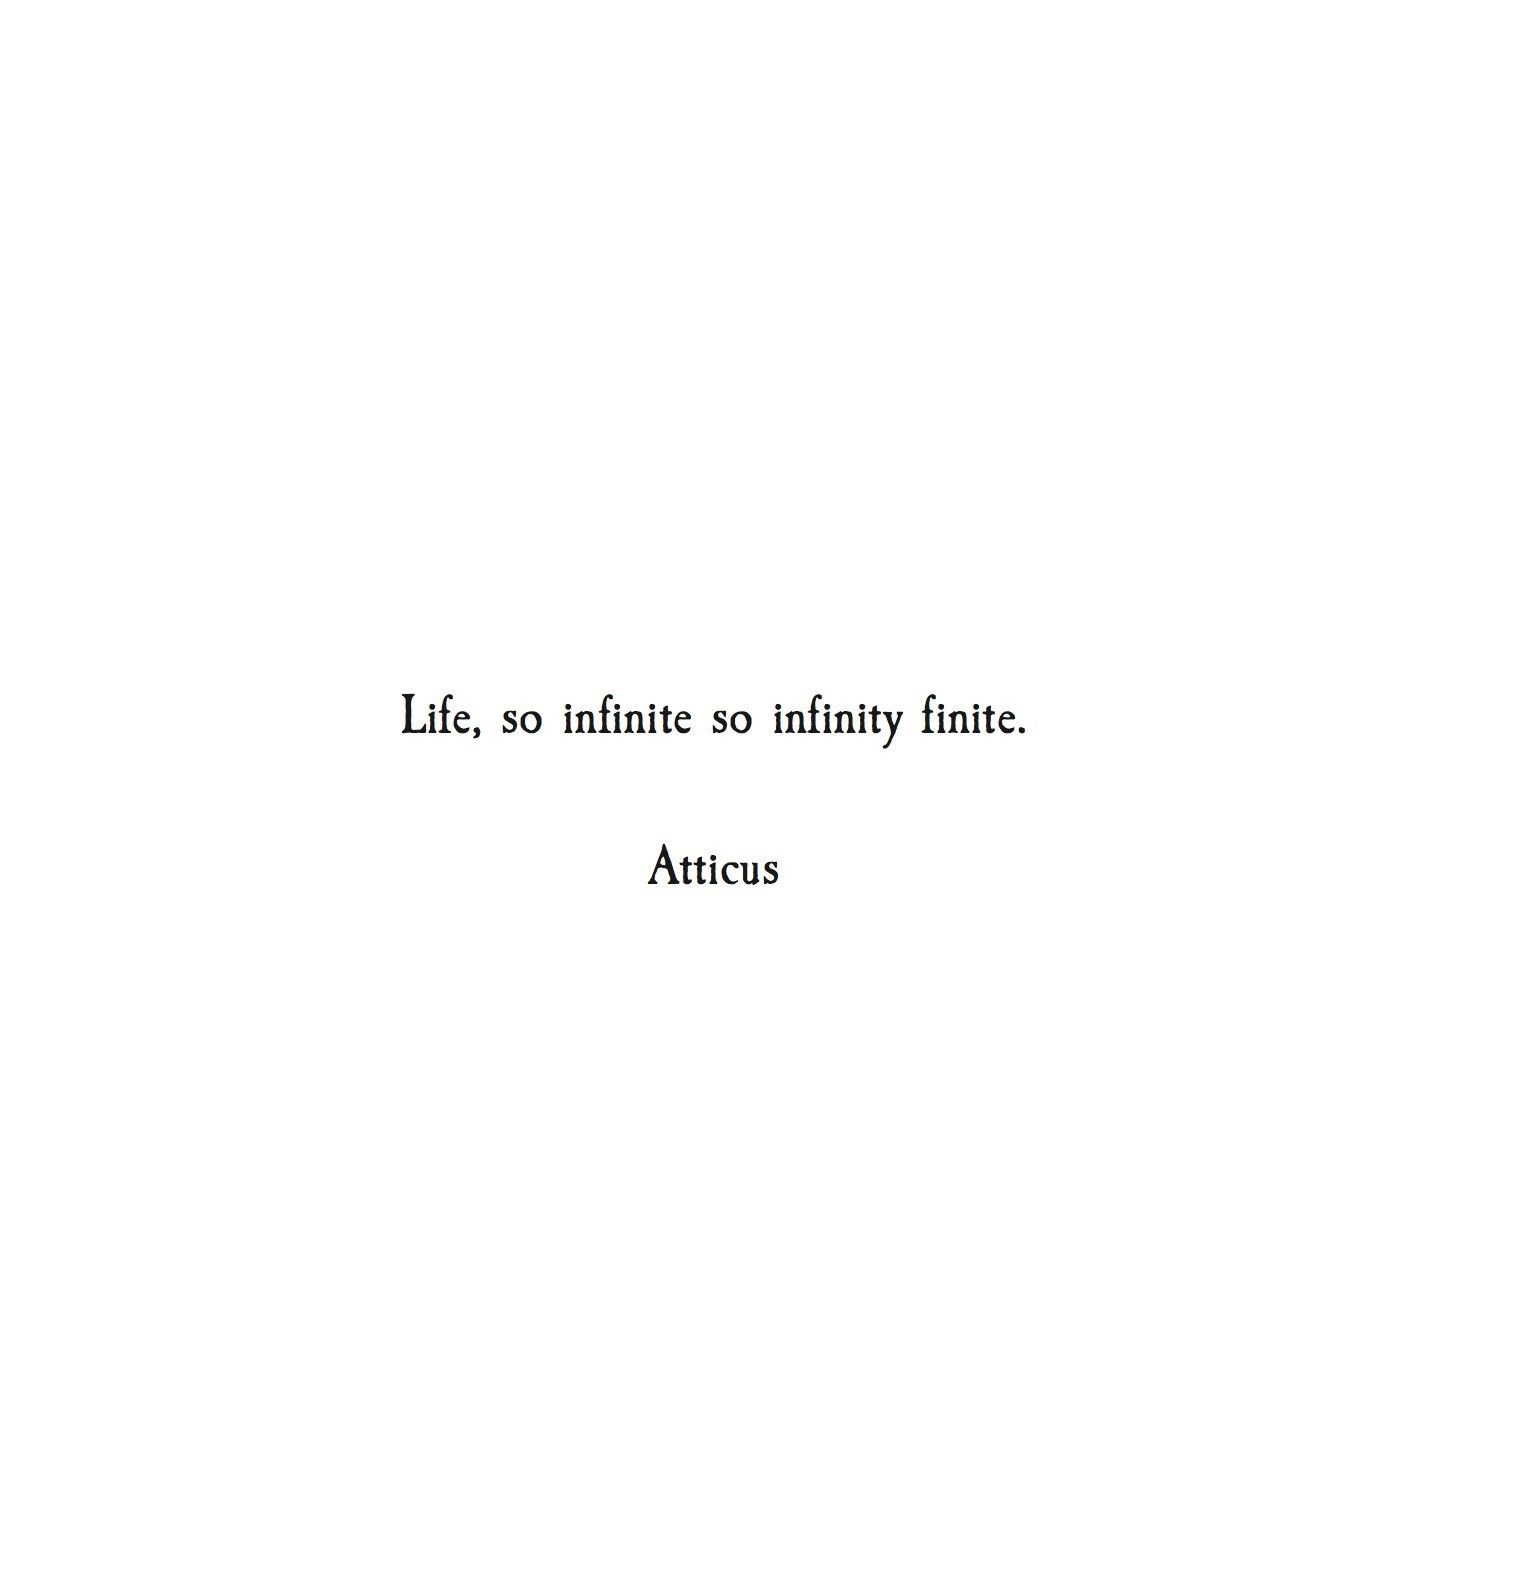 Image of: Love atticuspoetry atticuspoetry Short Meaningful Quotes Atticus Quotes Poem Quotes Words Quotes Pinterest Atticuspoetry atticuspoetry Love Quotes Life Quotes Quotes